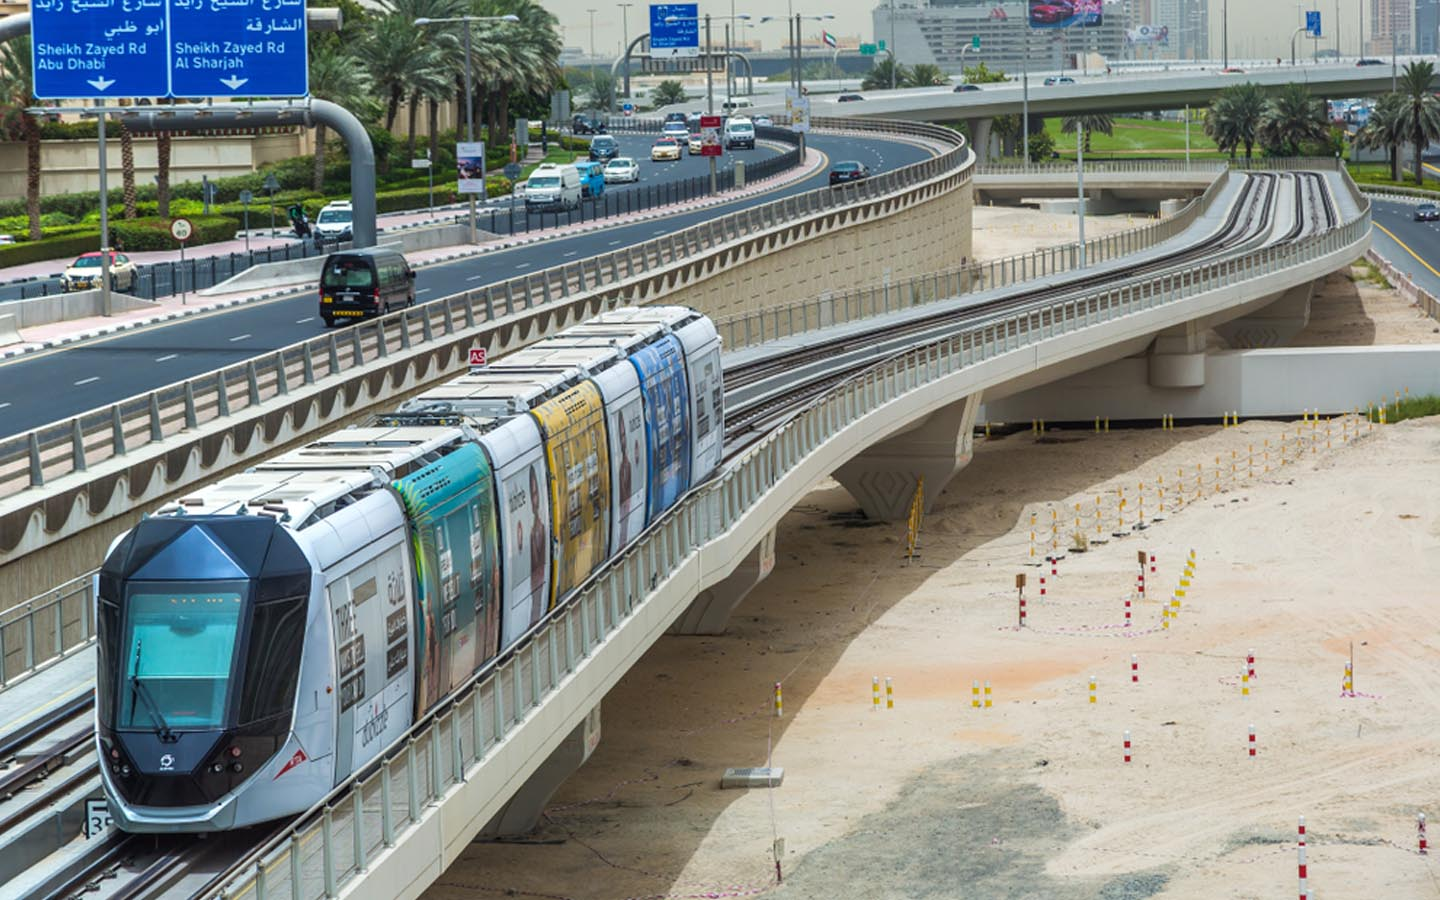 Dubai metro and tram systems